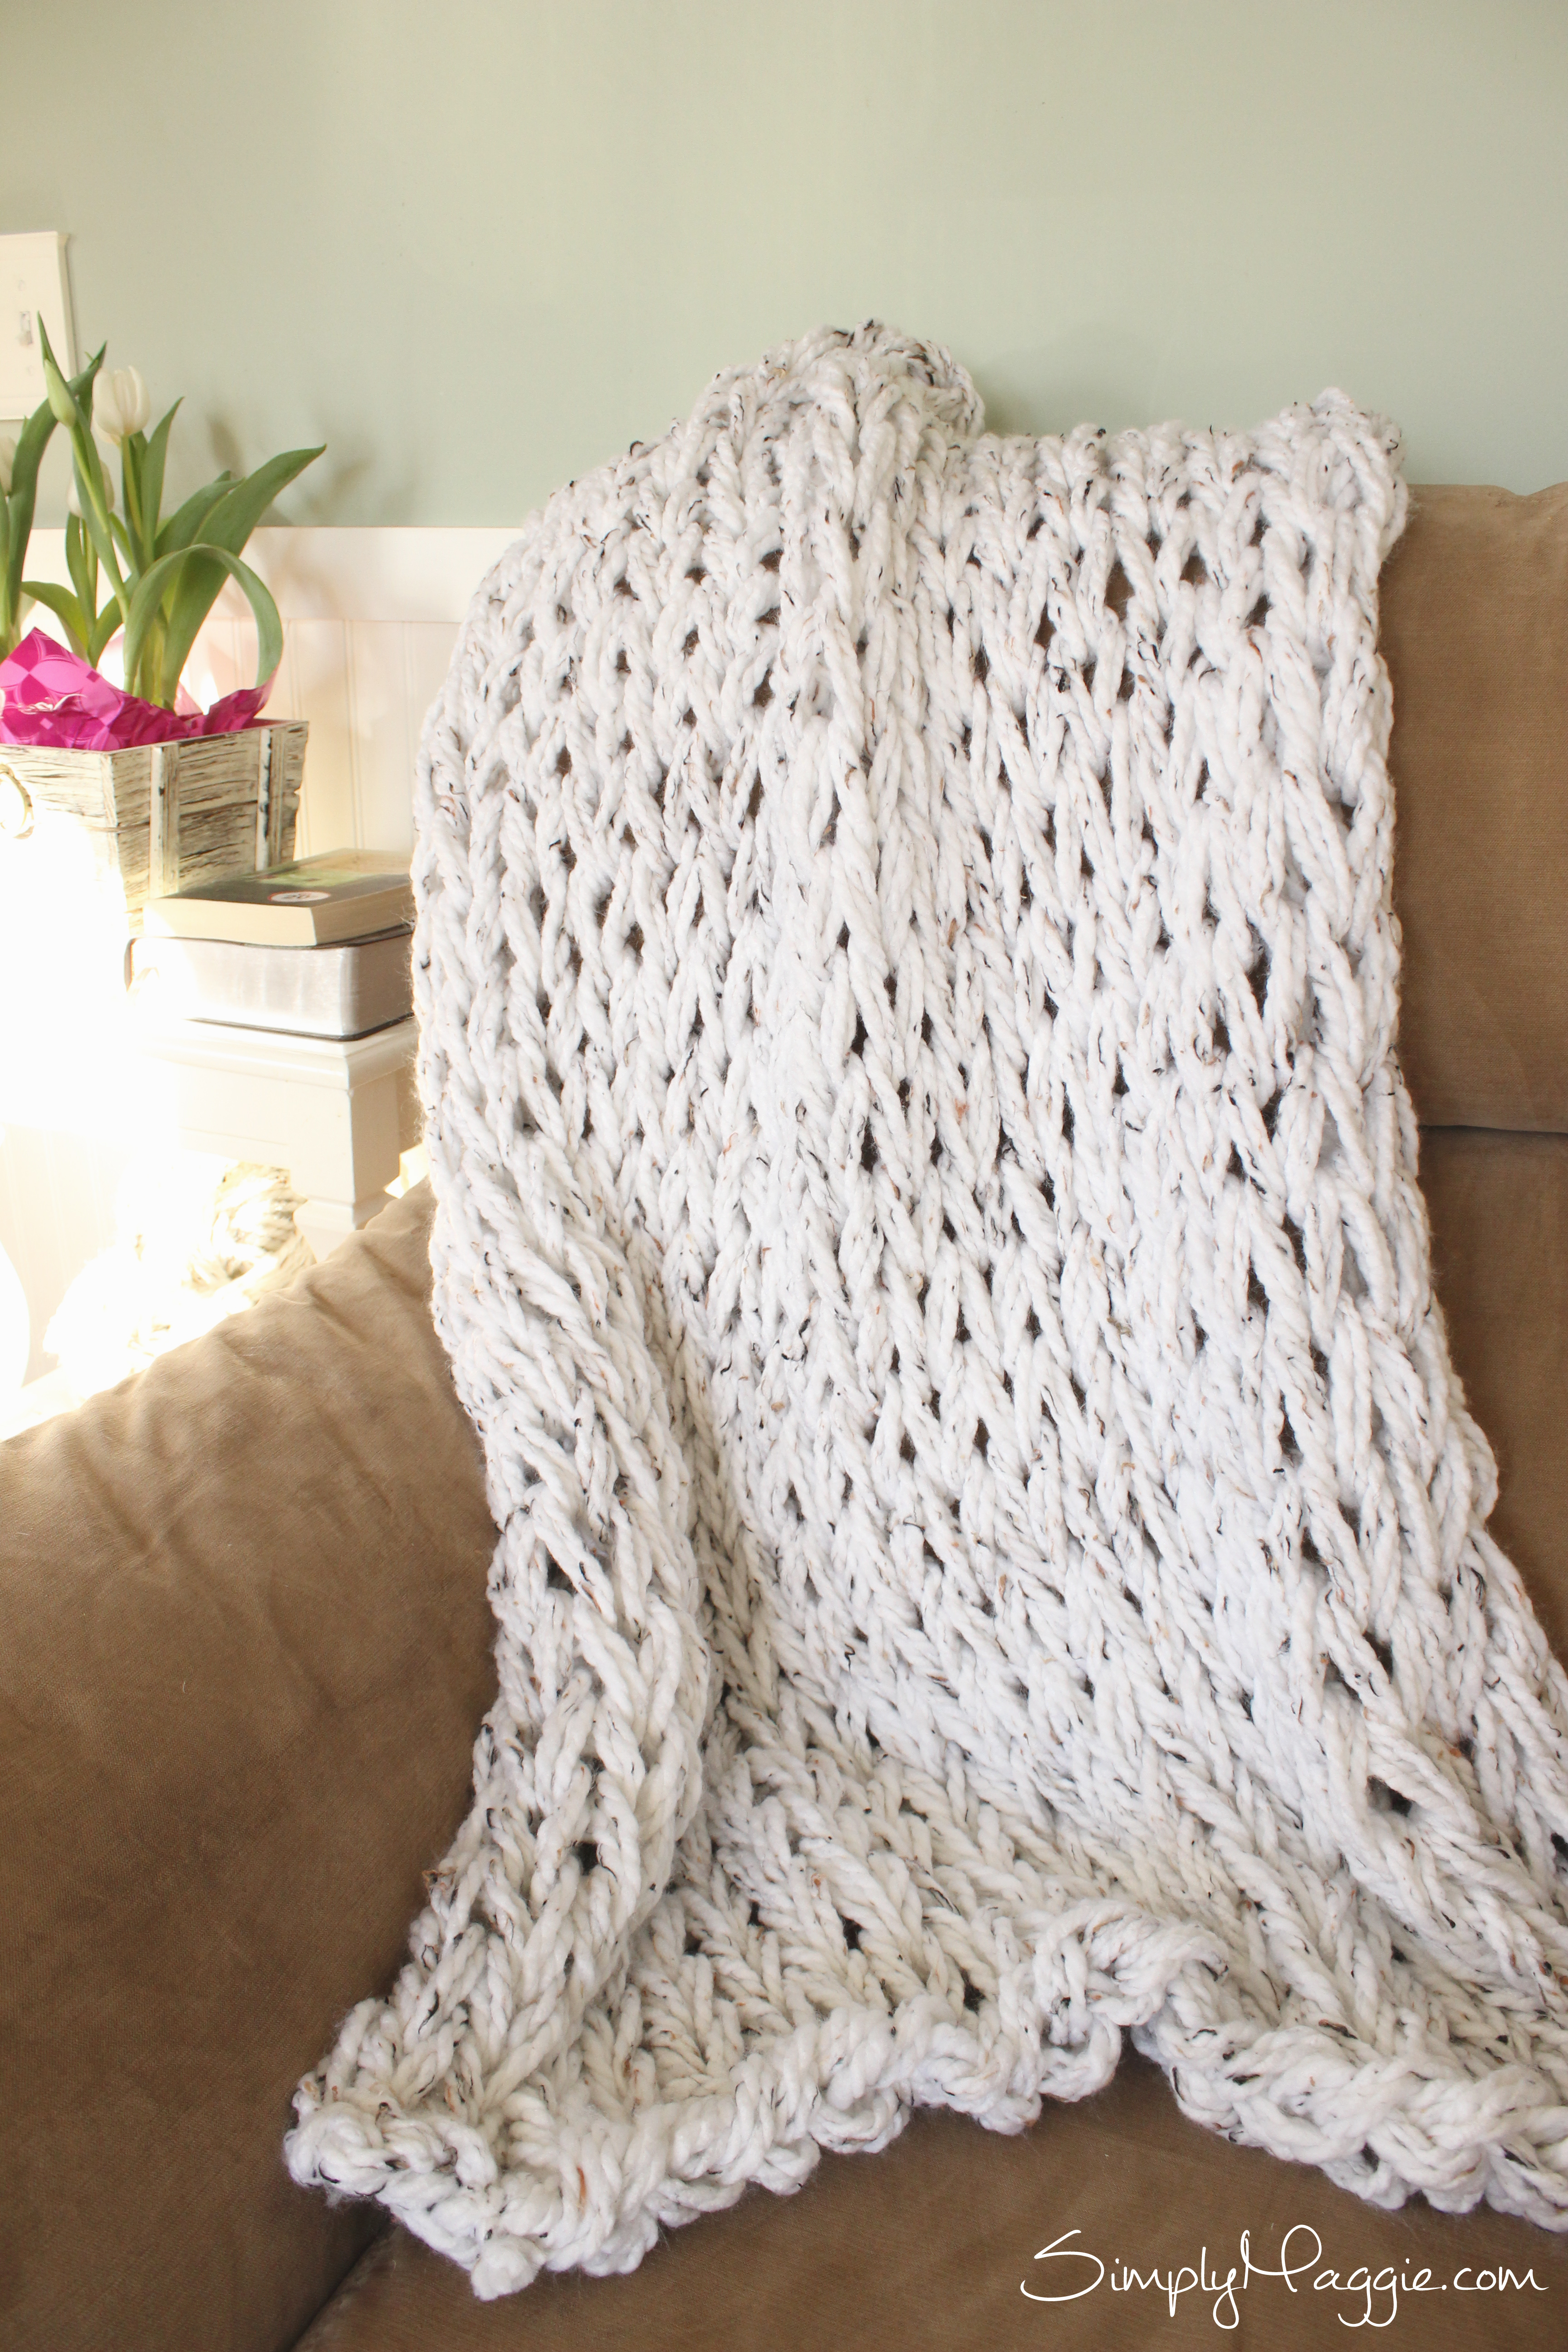 Knit a Chunky Blanket in 1 Hour with Arm knitting. SimplyMaggie.com